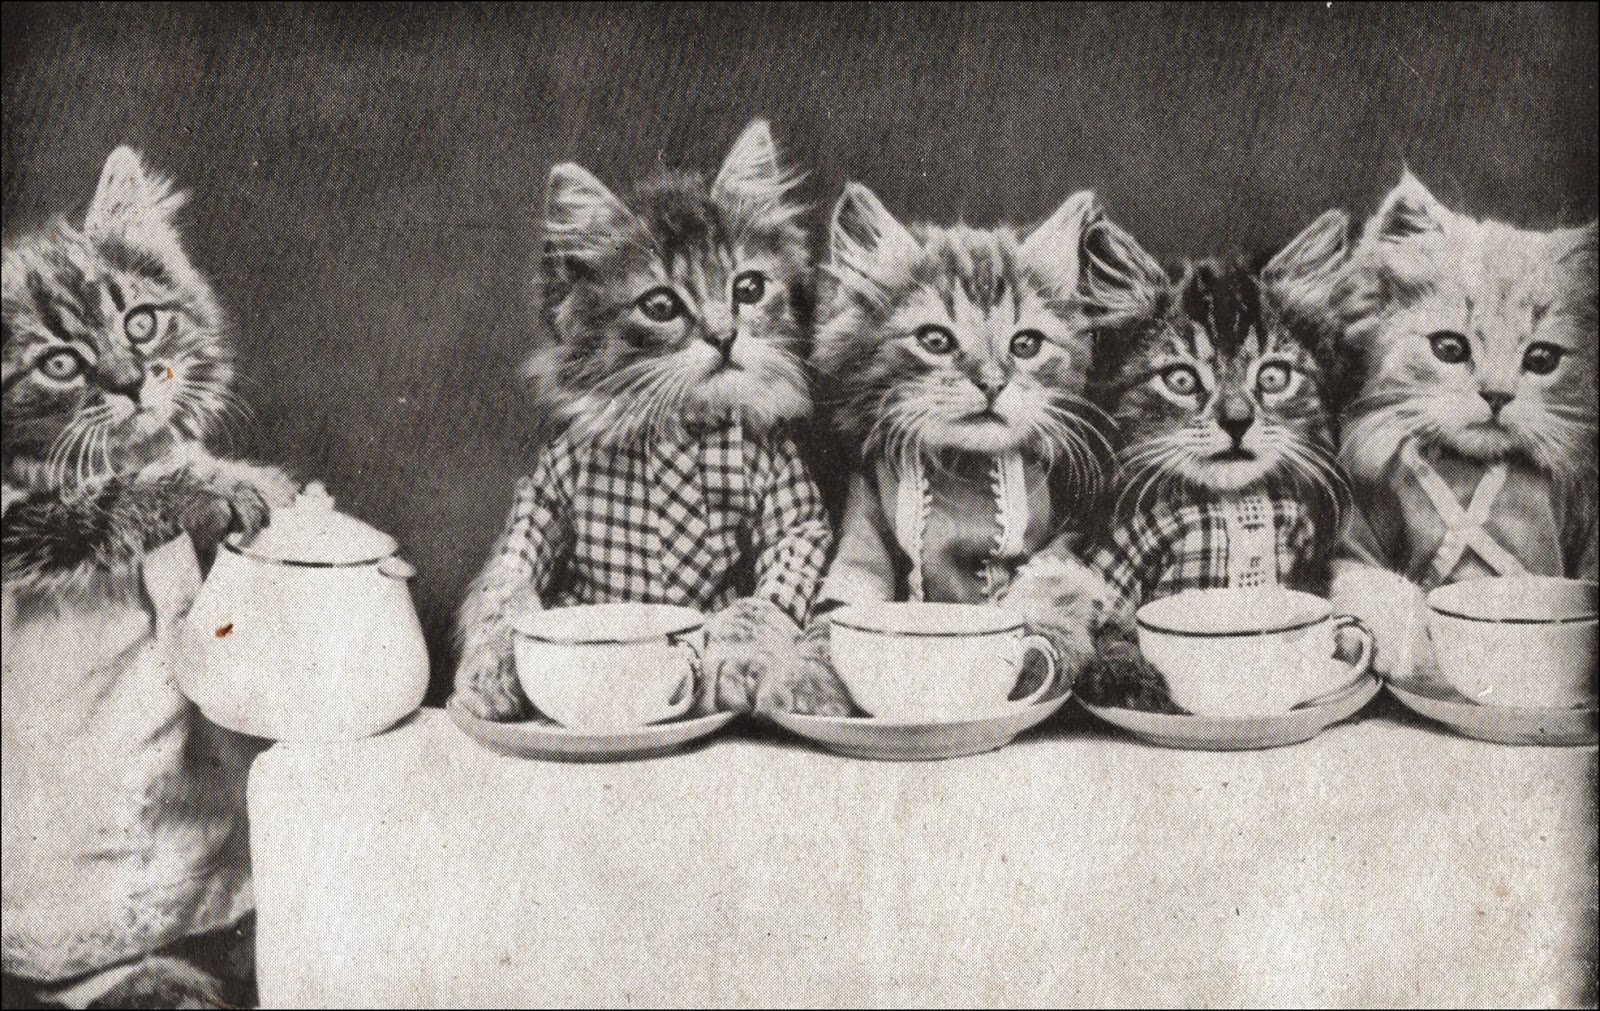 Vintage kittens having tea